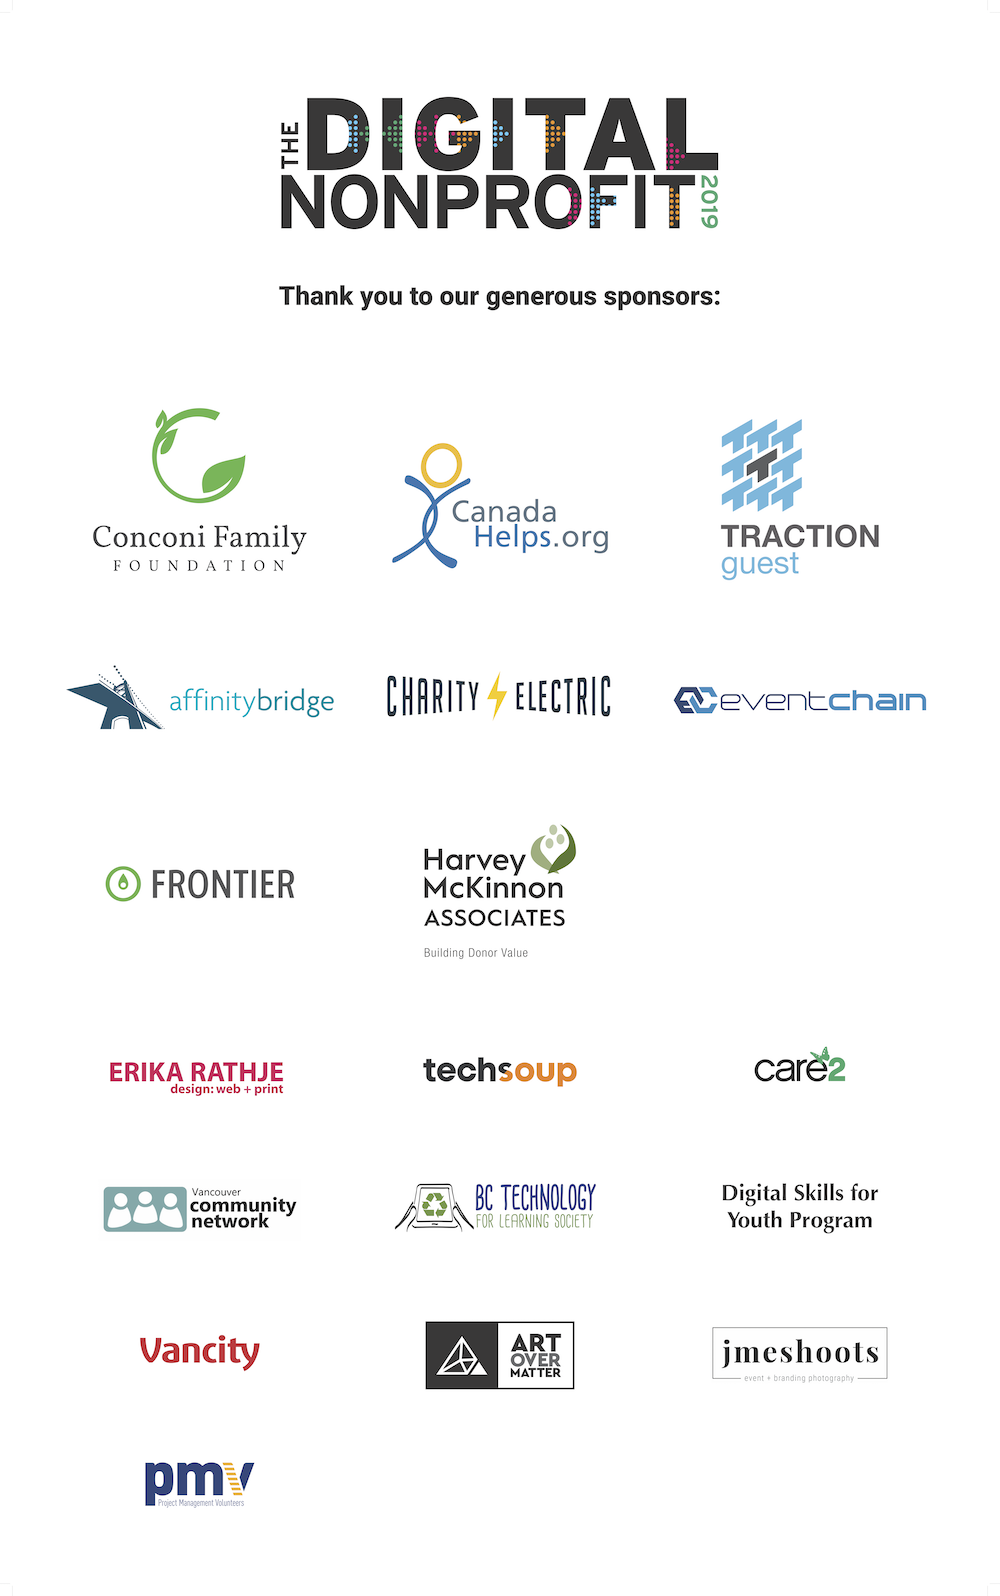 The Digital Nonprofit sponsor logos